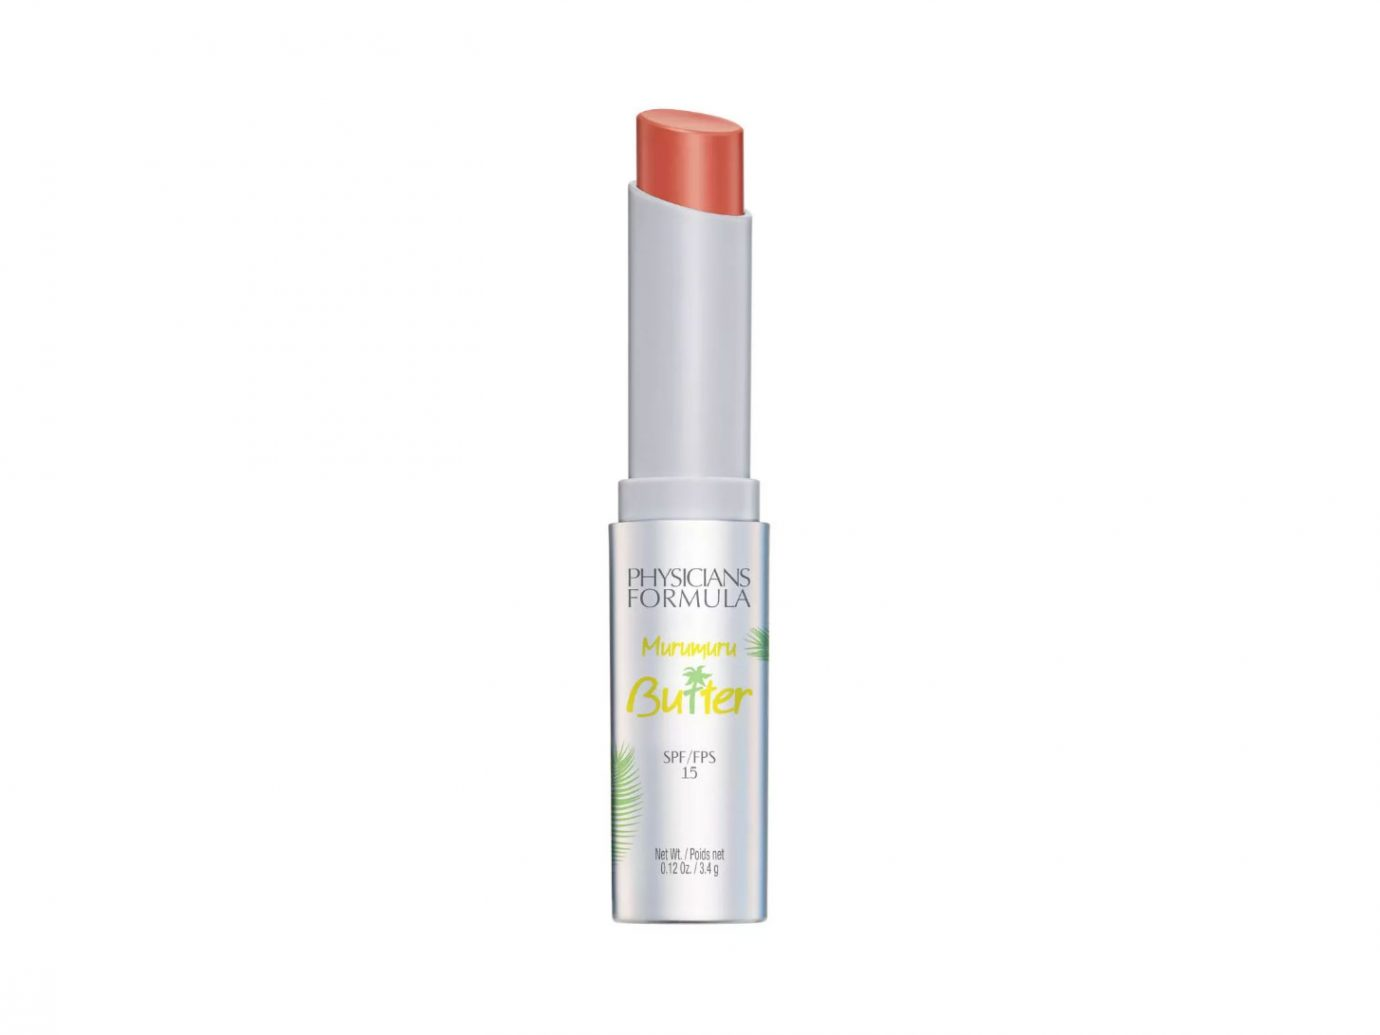 Physicians Formula Murumuru Butter Lip Cream